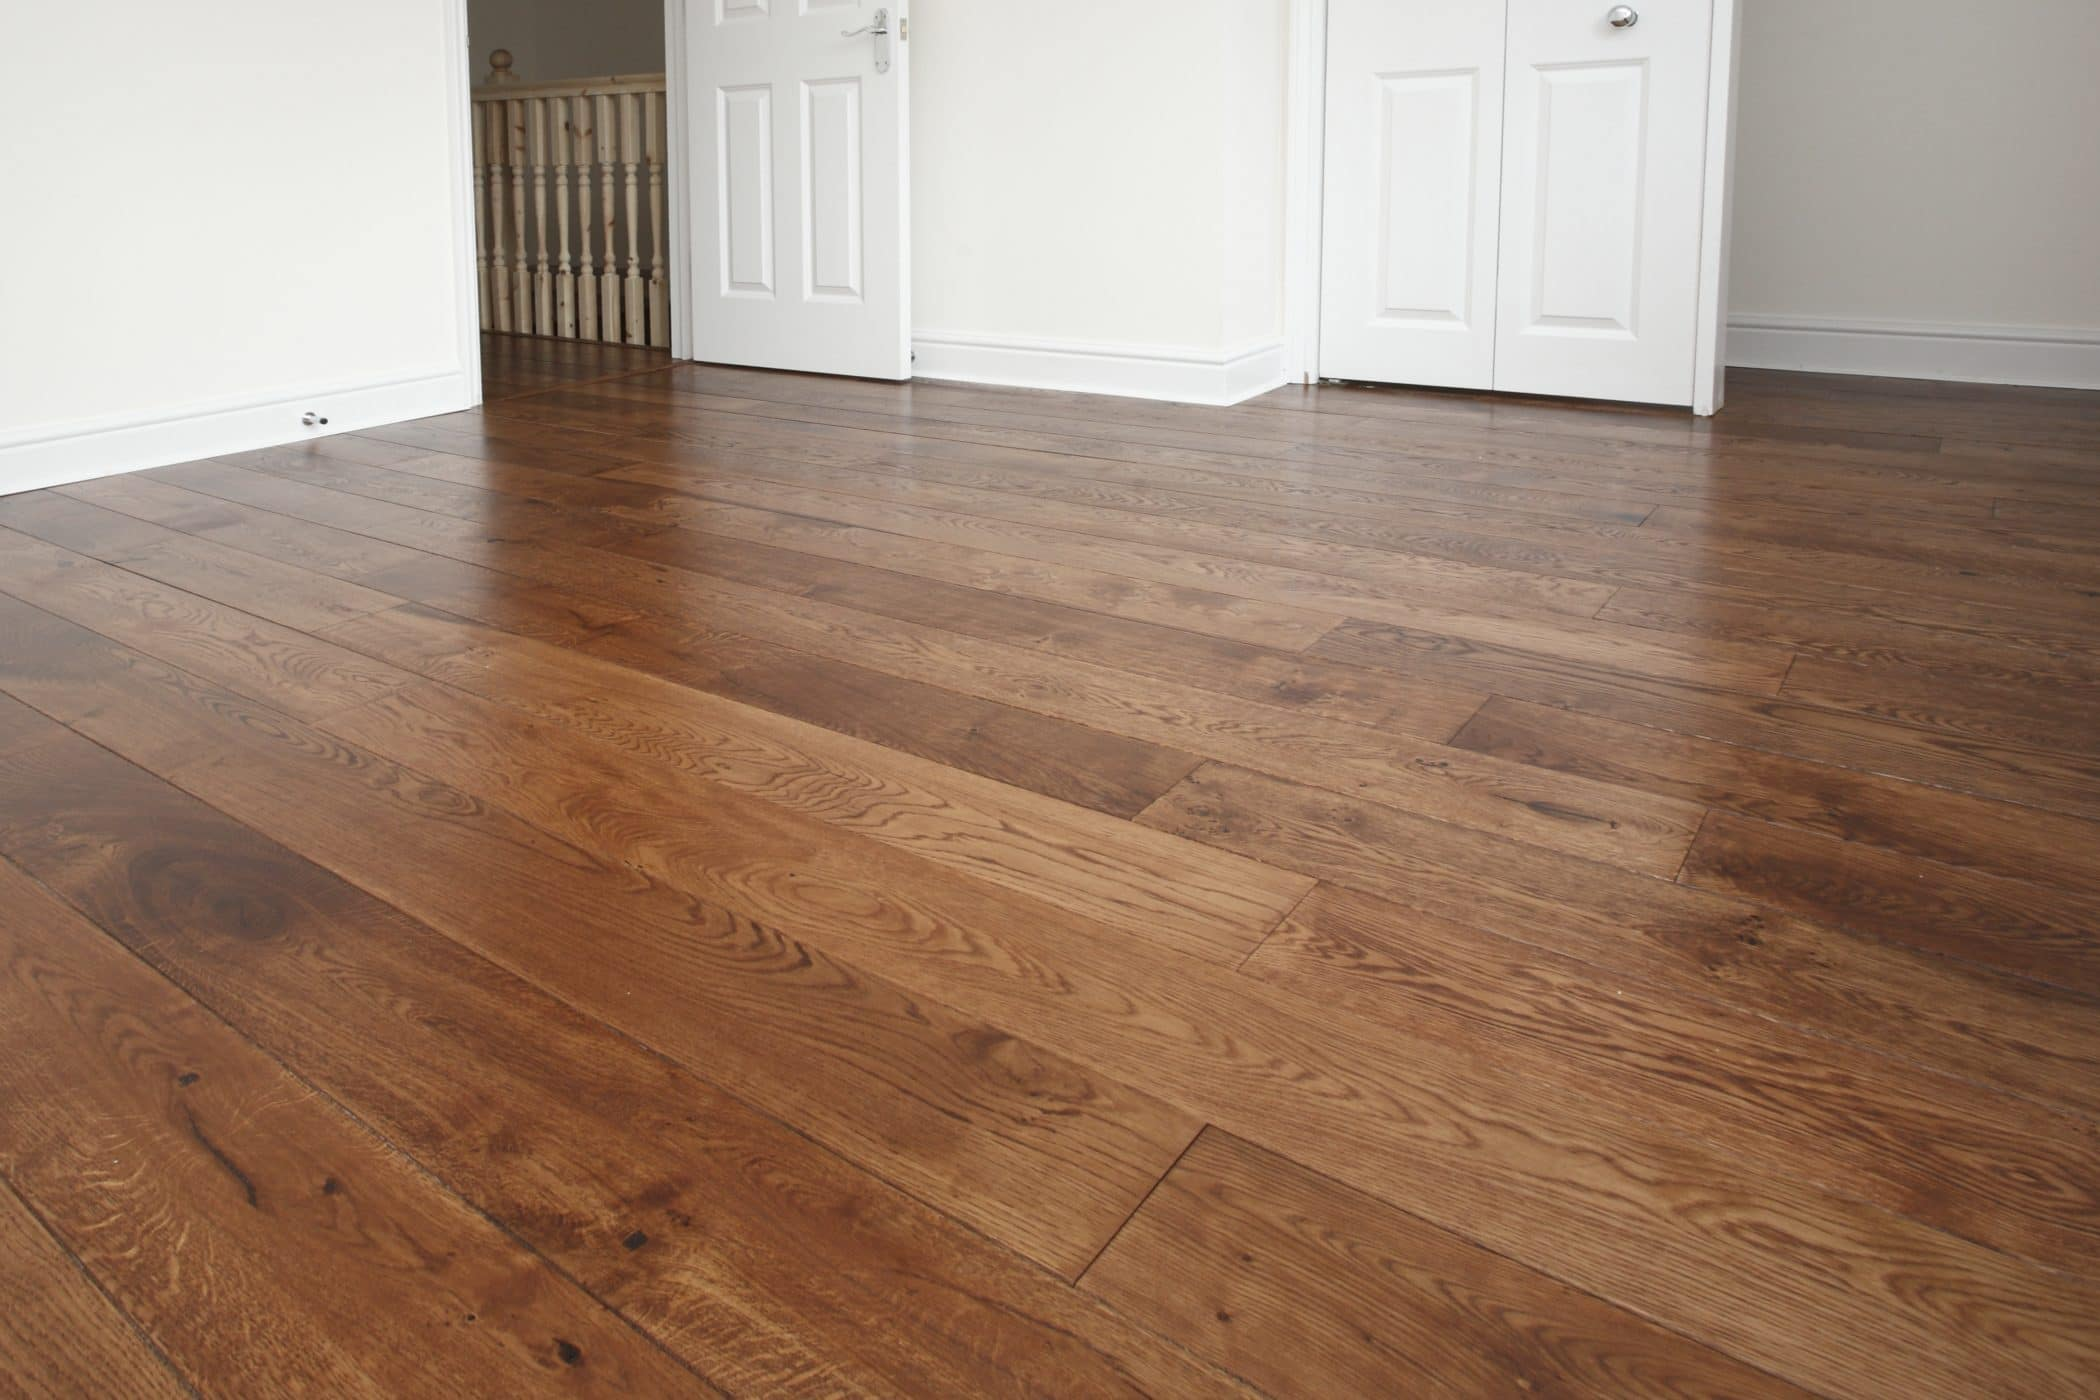 Wood Flooring Guildford  UK Wood Floors  Bespoke Joinery